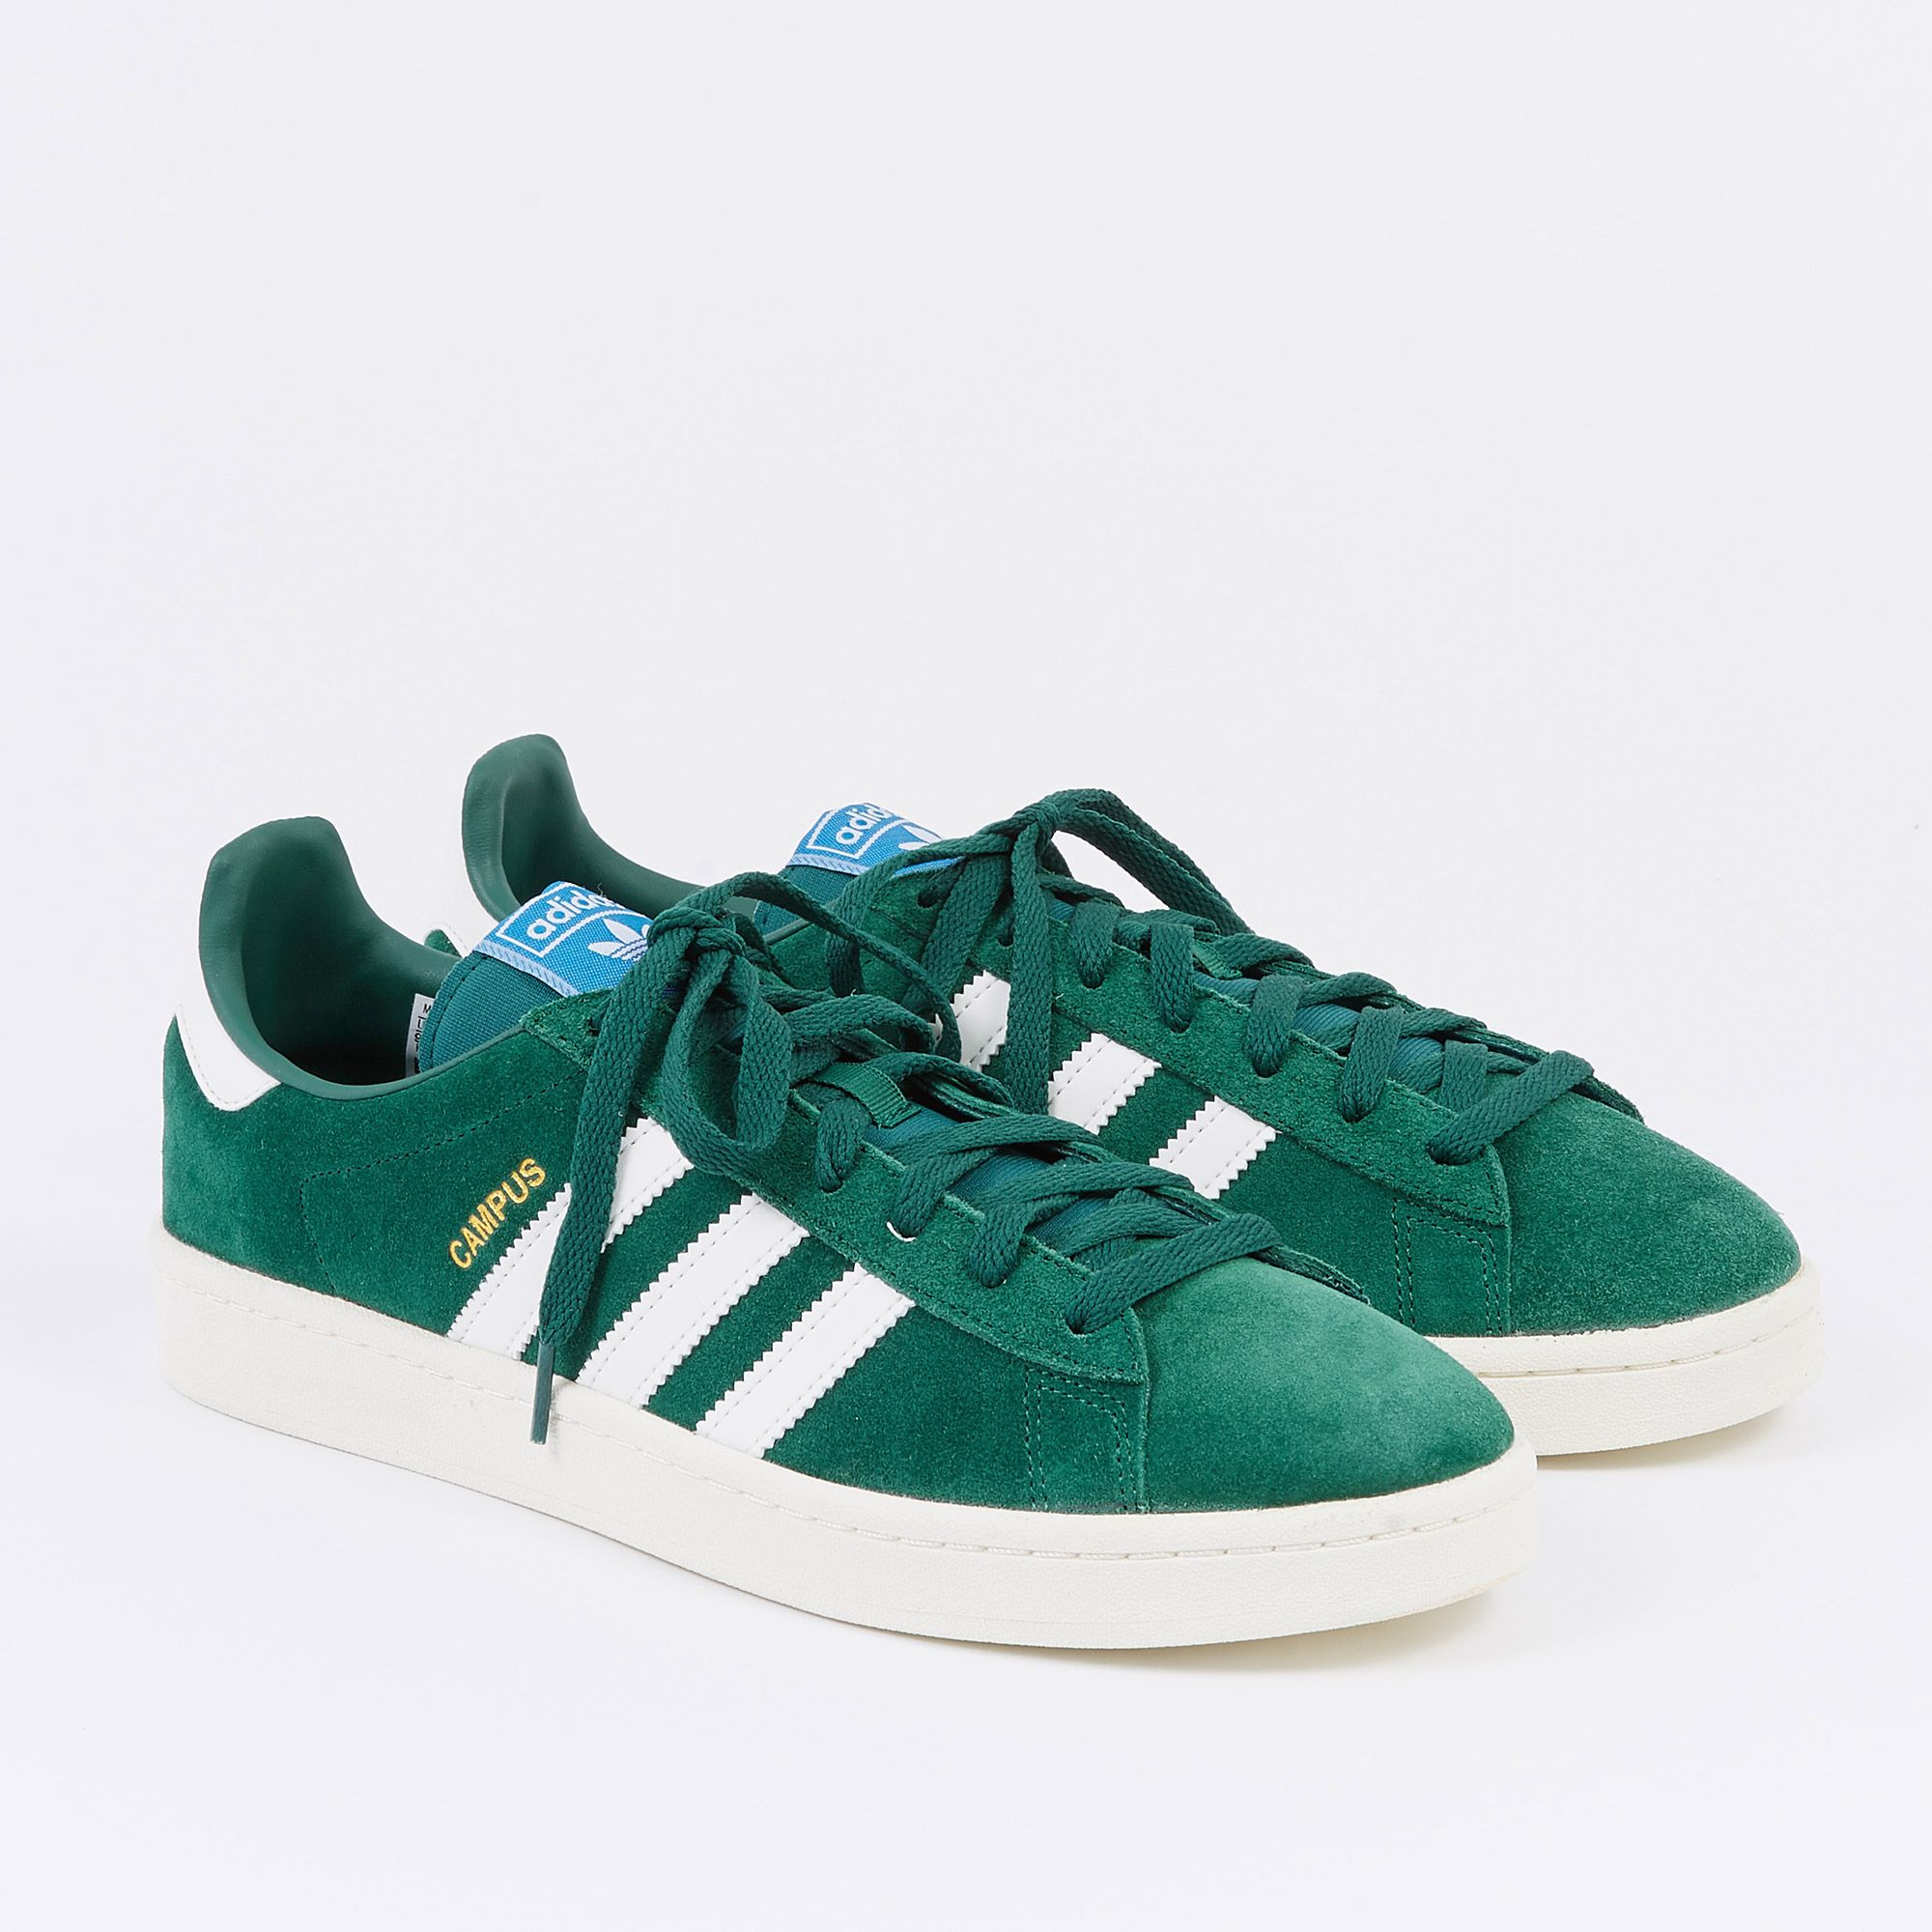 new style af848 99024 Adidas Campus - Collegiate Green